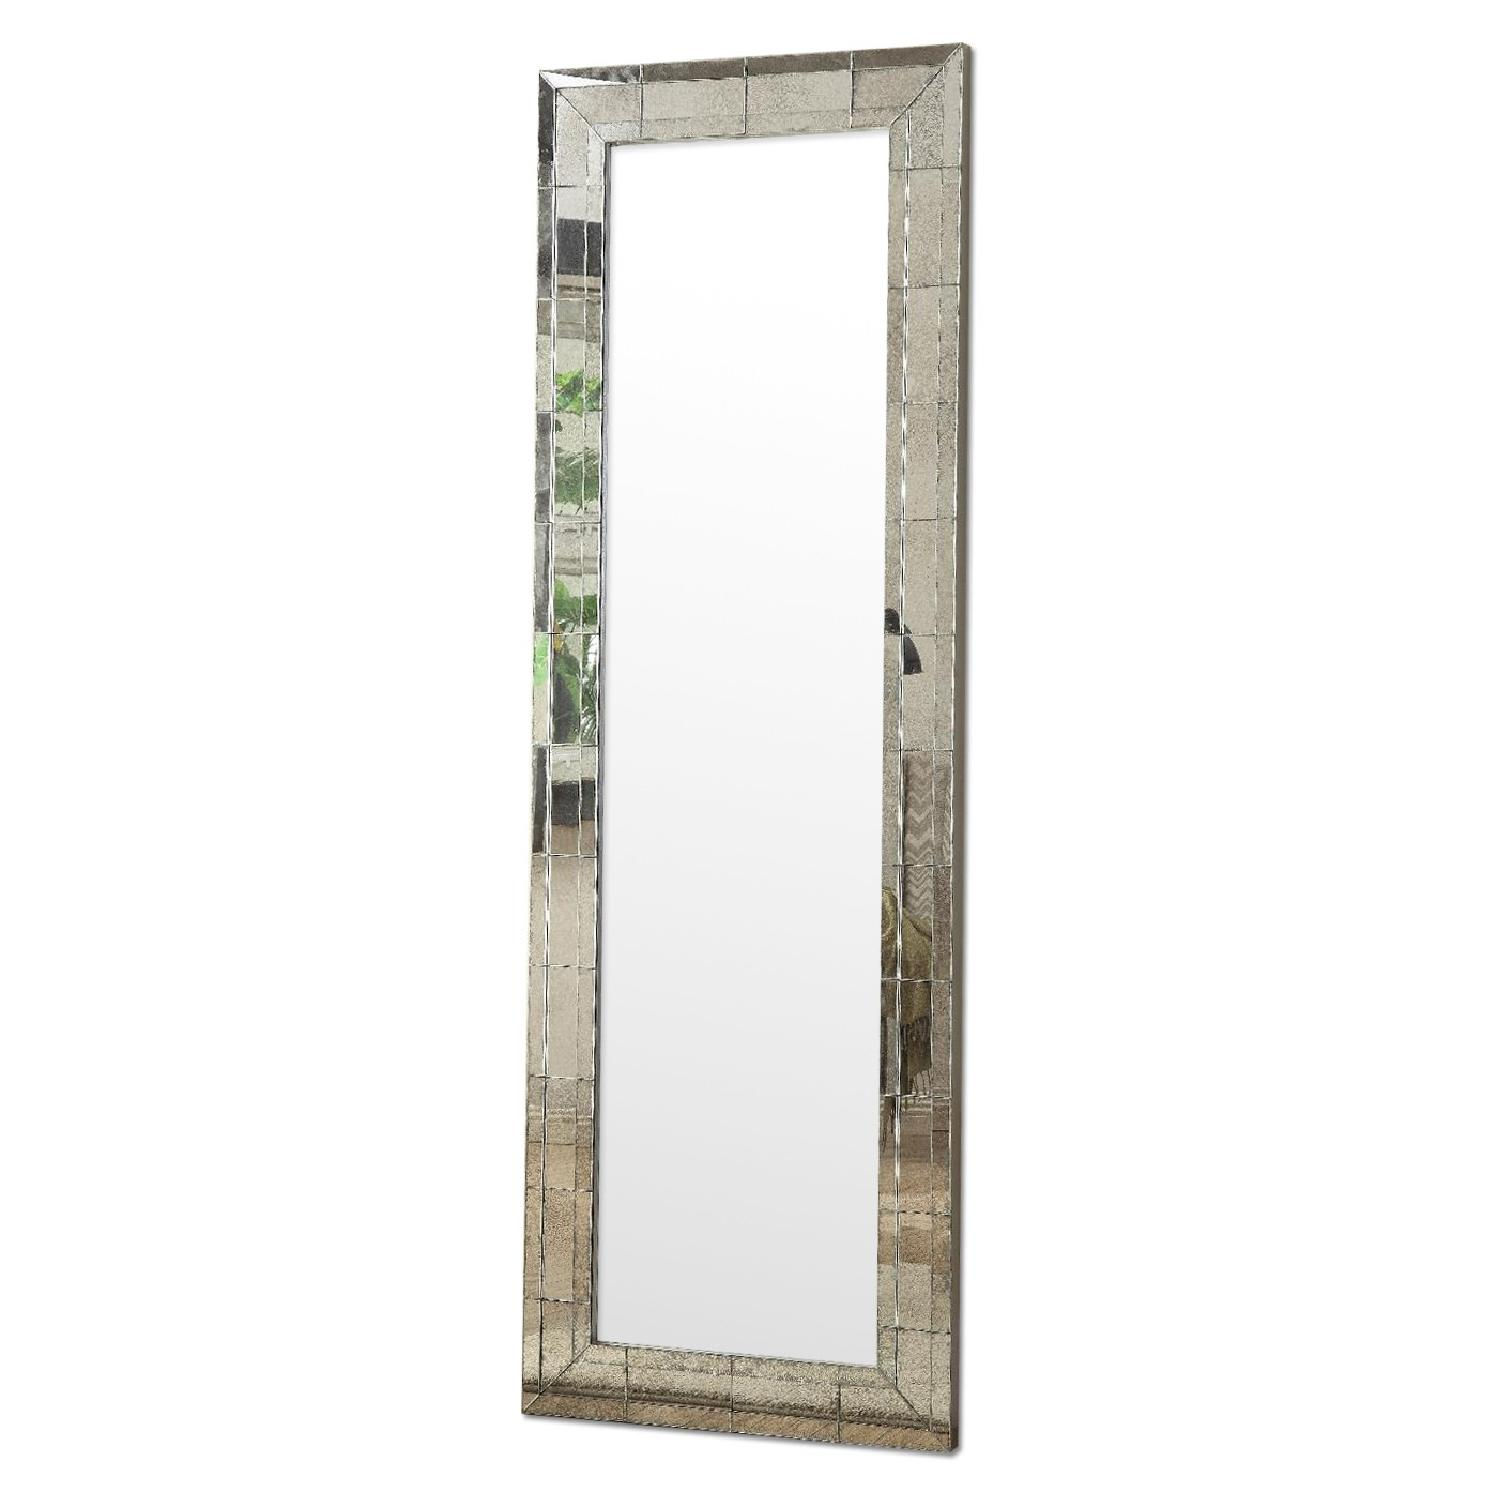 Full Length Mirror w/ Eclectic Vintage Style Mirrored Frame - image-0